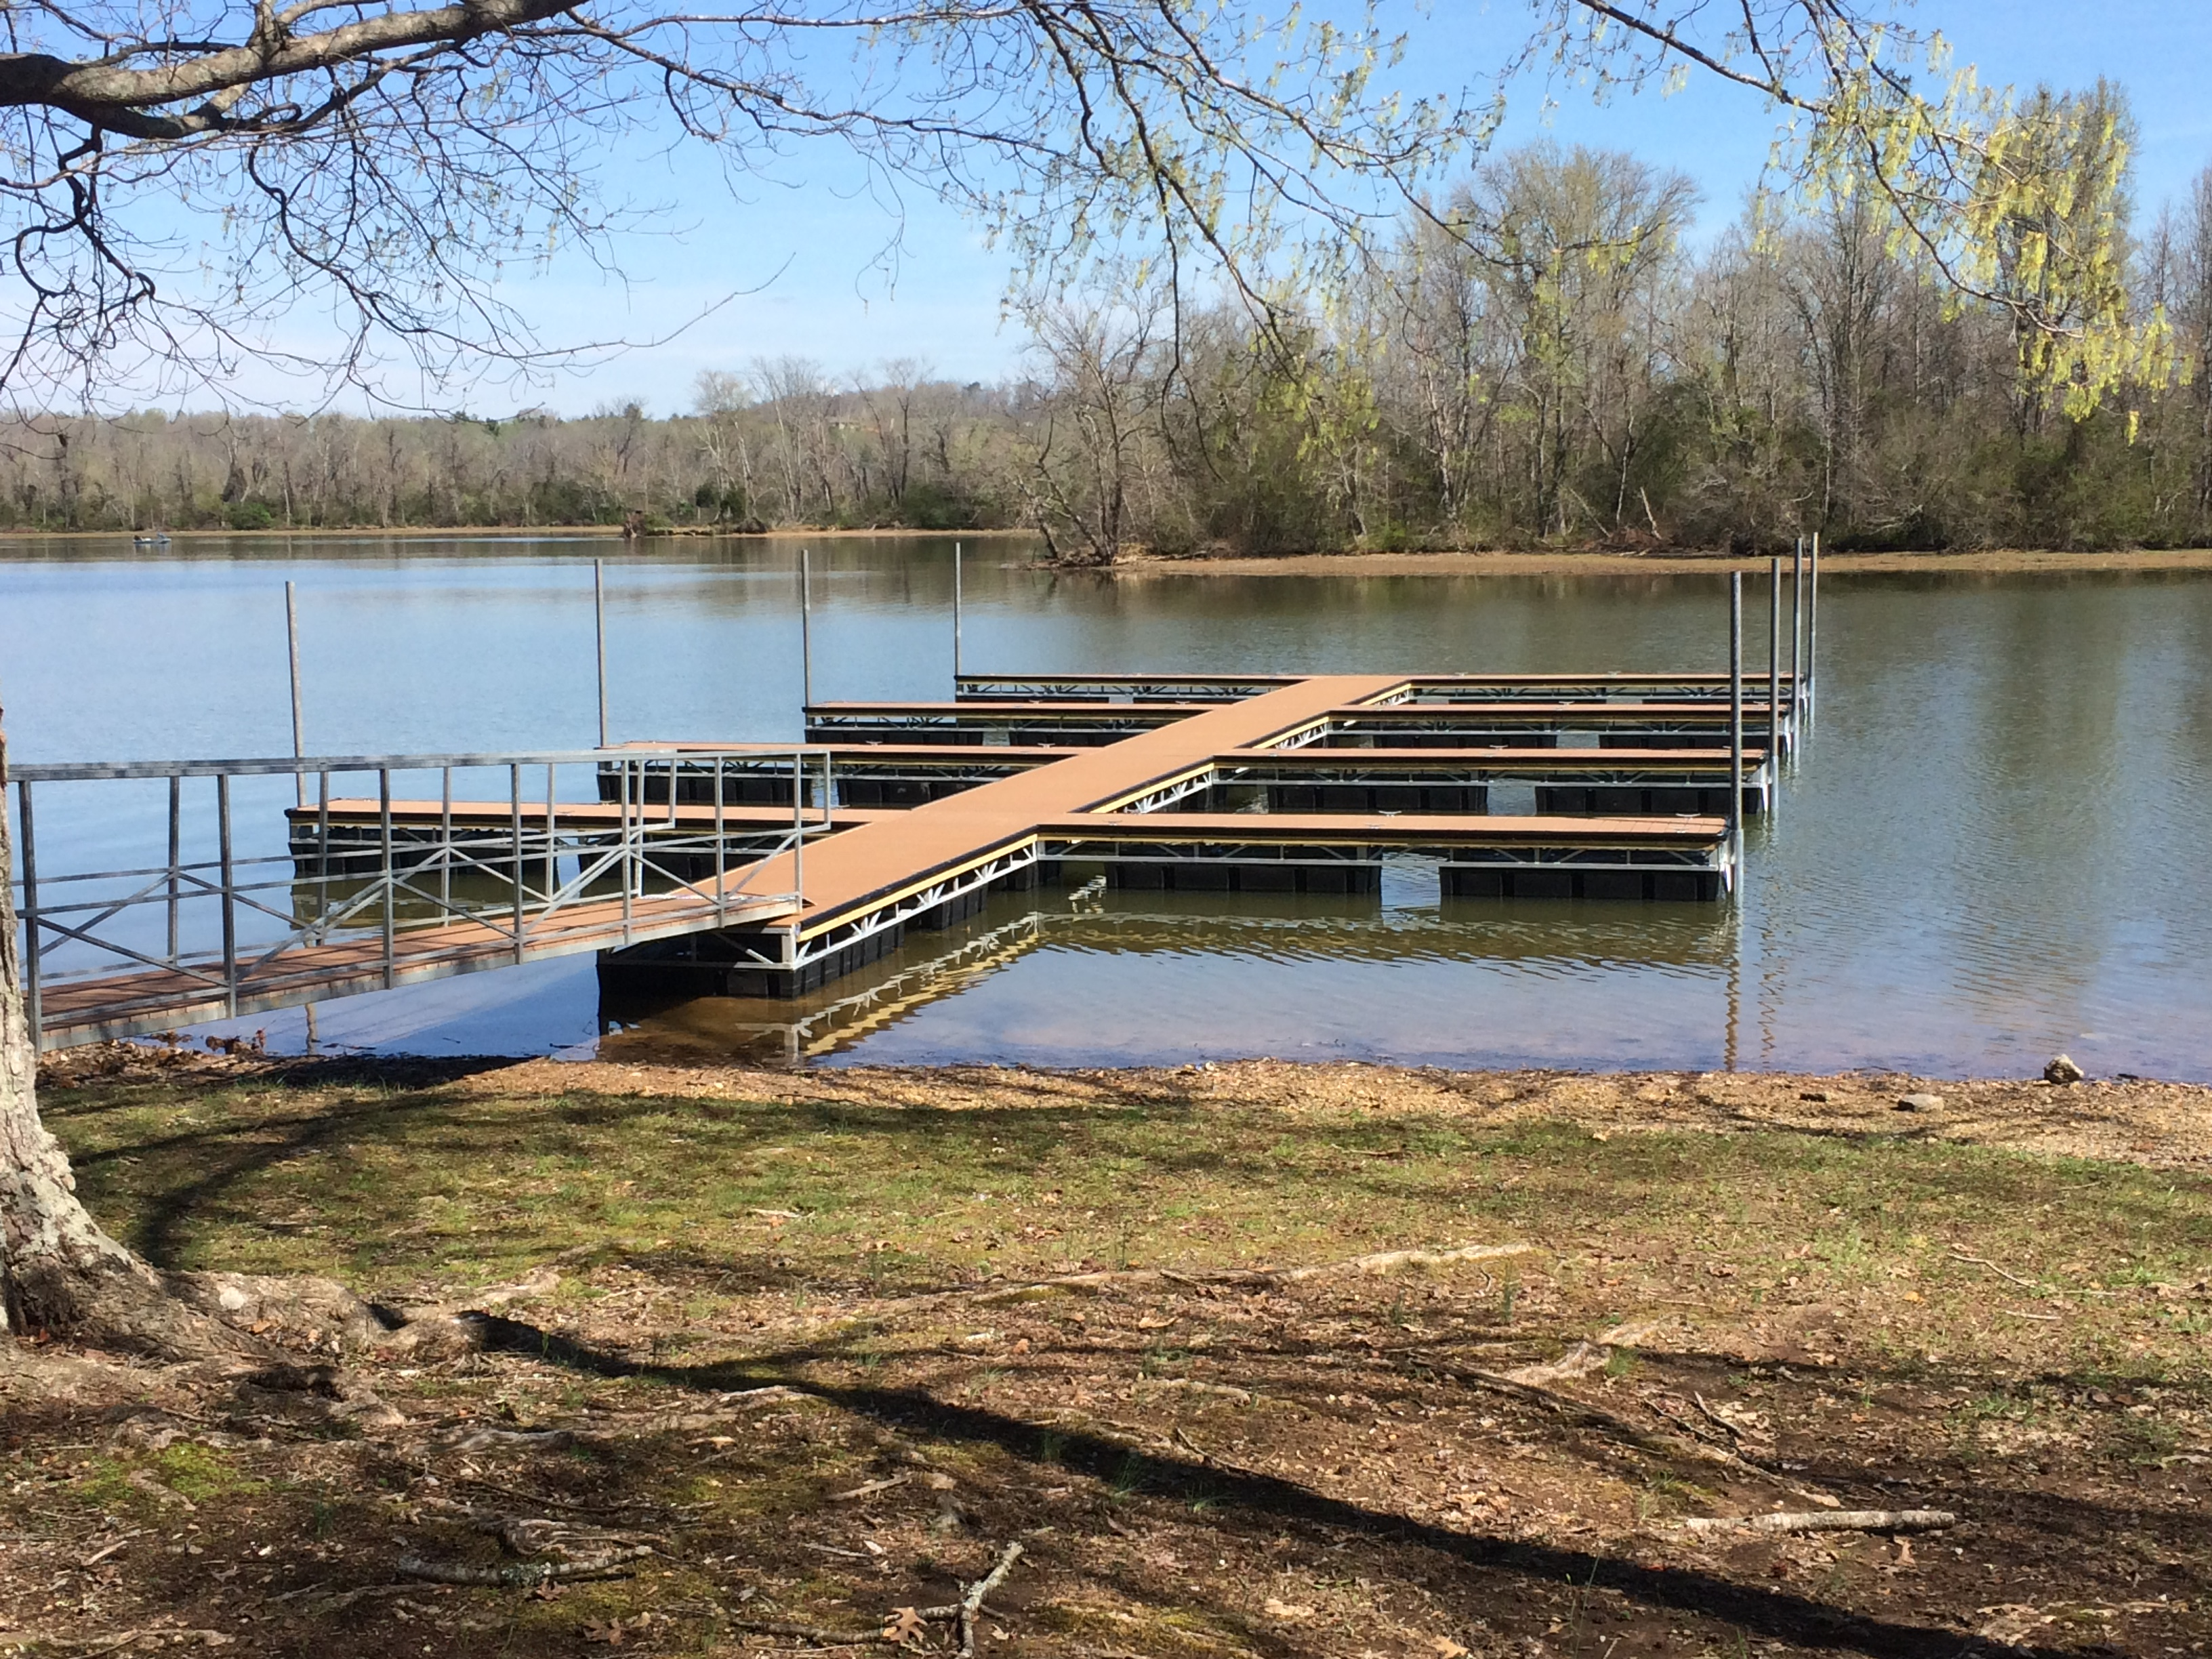 Roane County Parks - Riley Creek Boat Docks